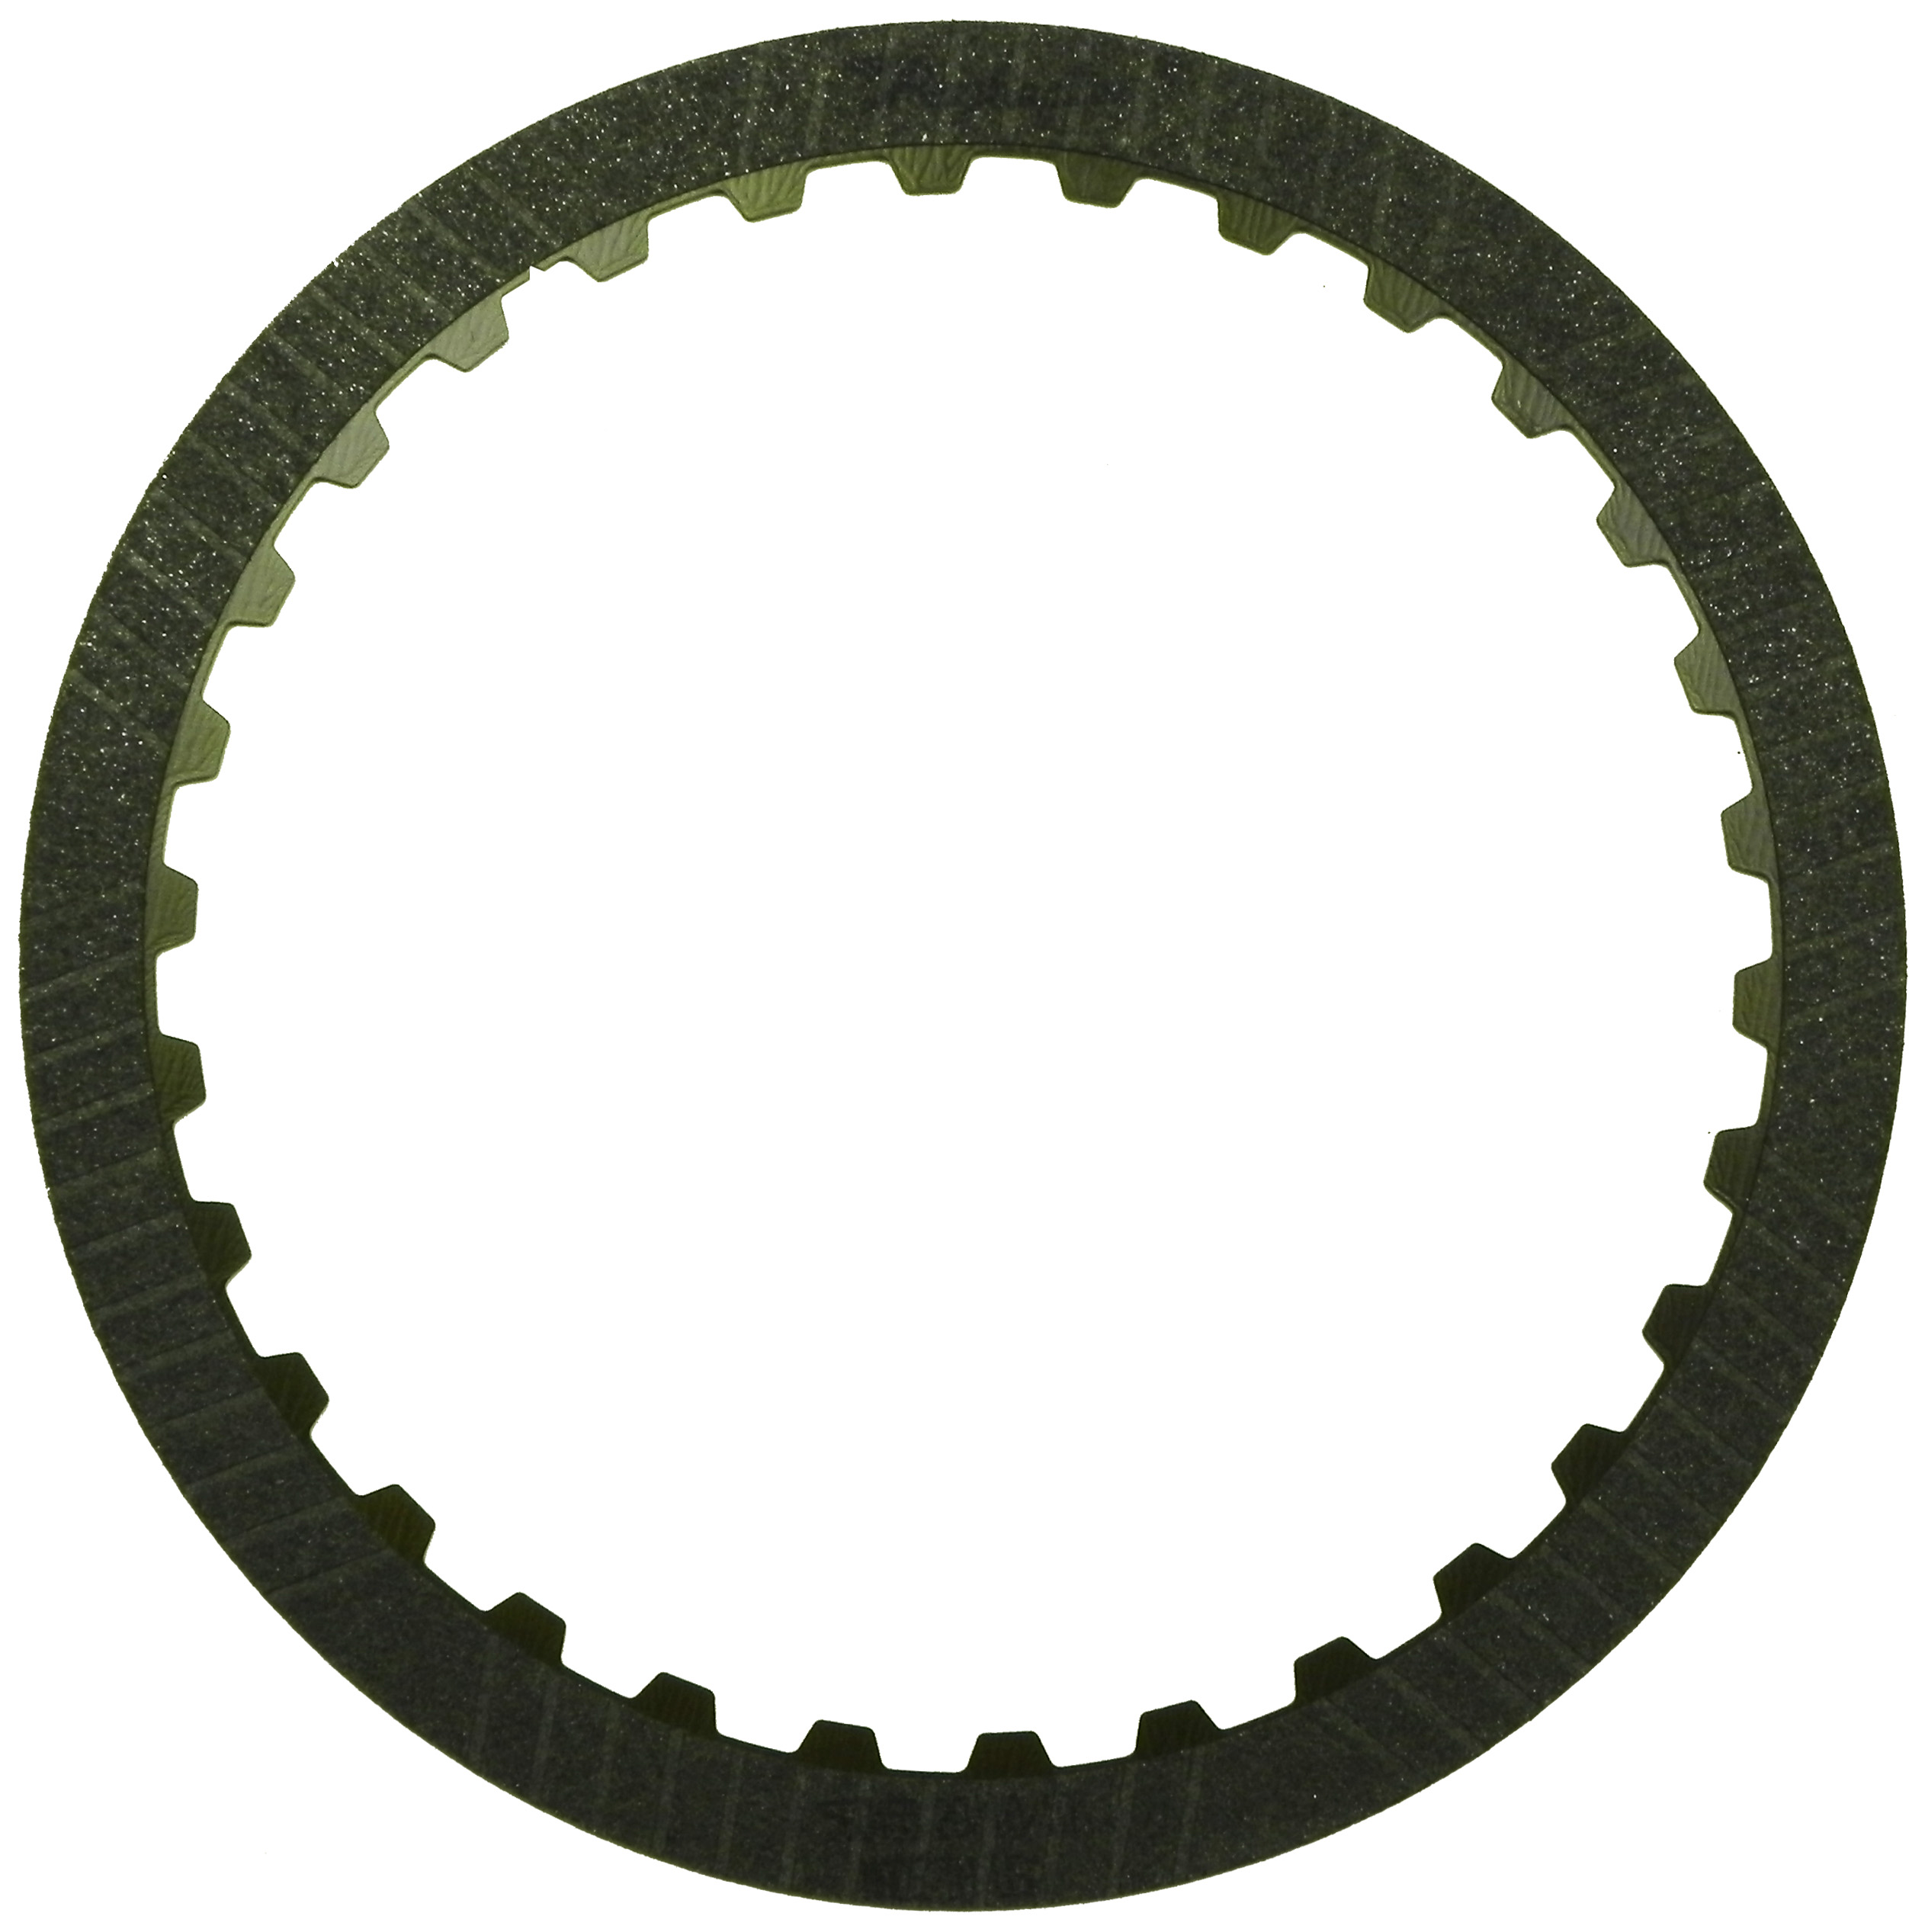 6HP19, 6HP19A, 6HP19X, 6HP21, 6HP21X, 09L High Energy Friction Clutch Plate